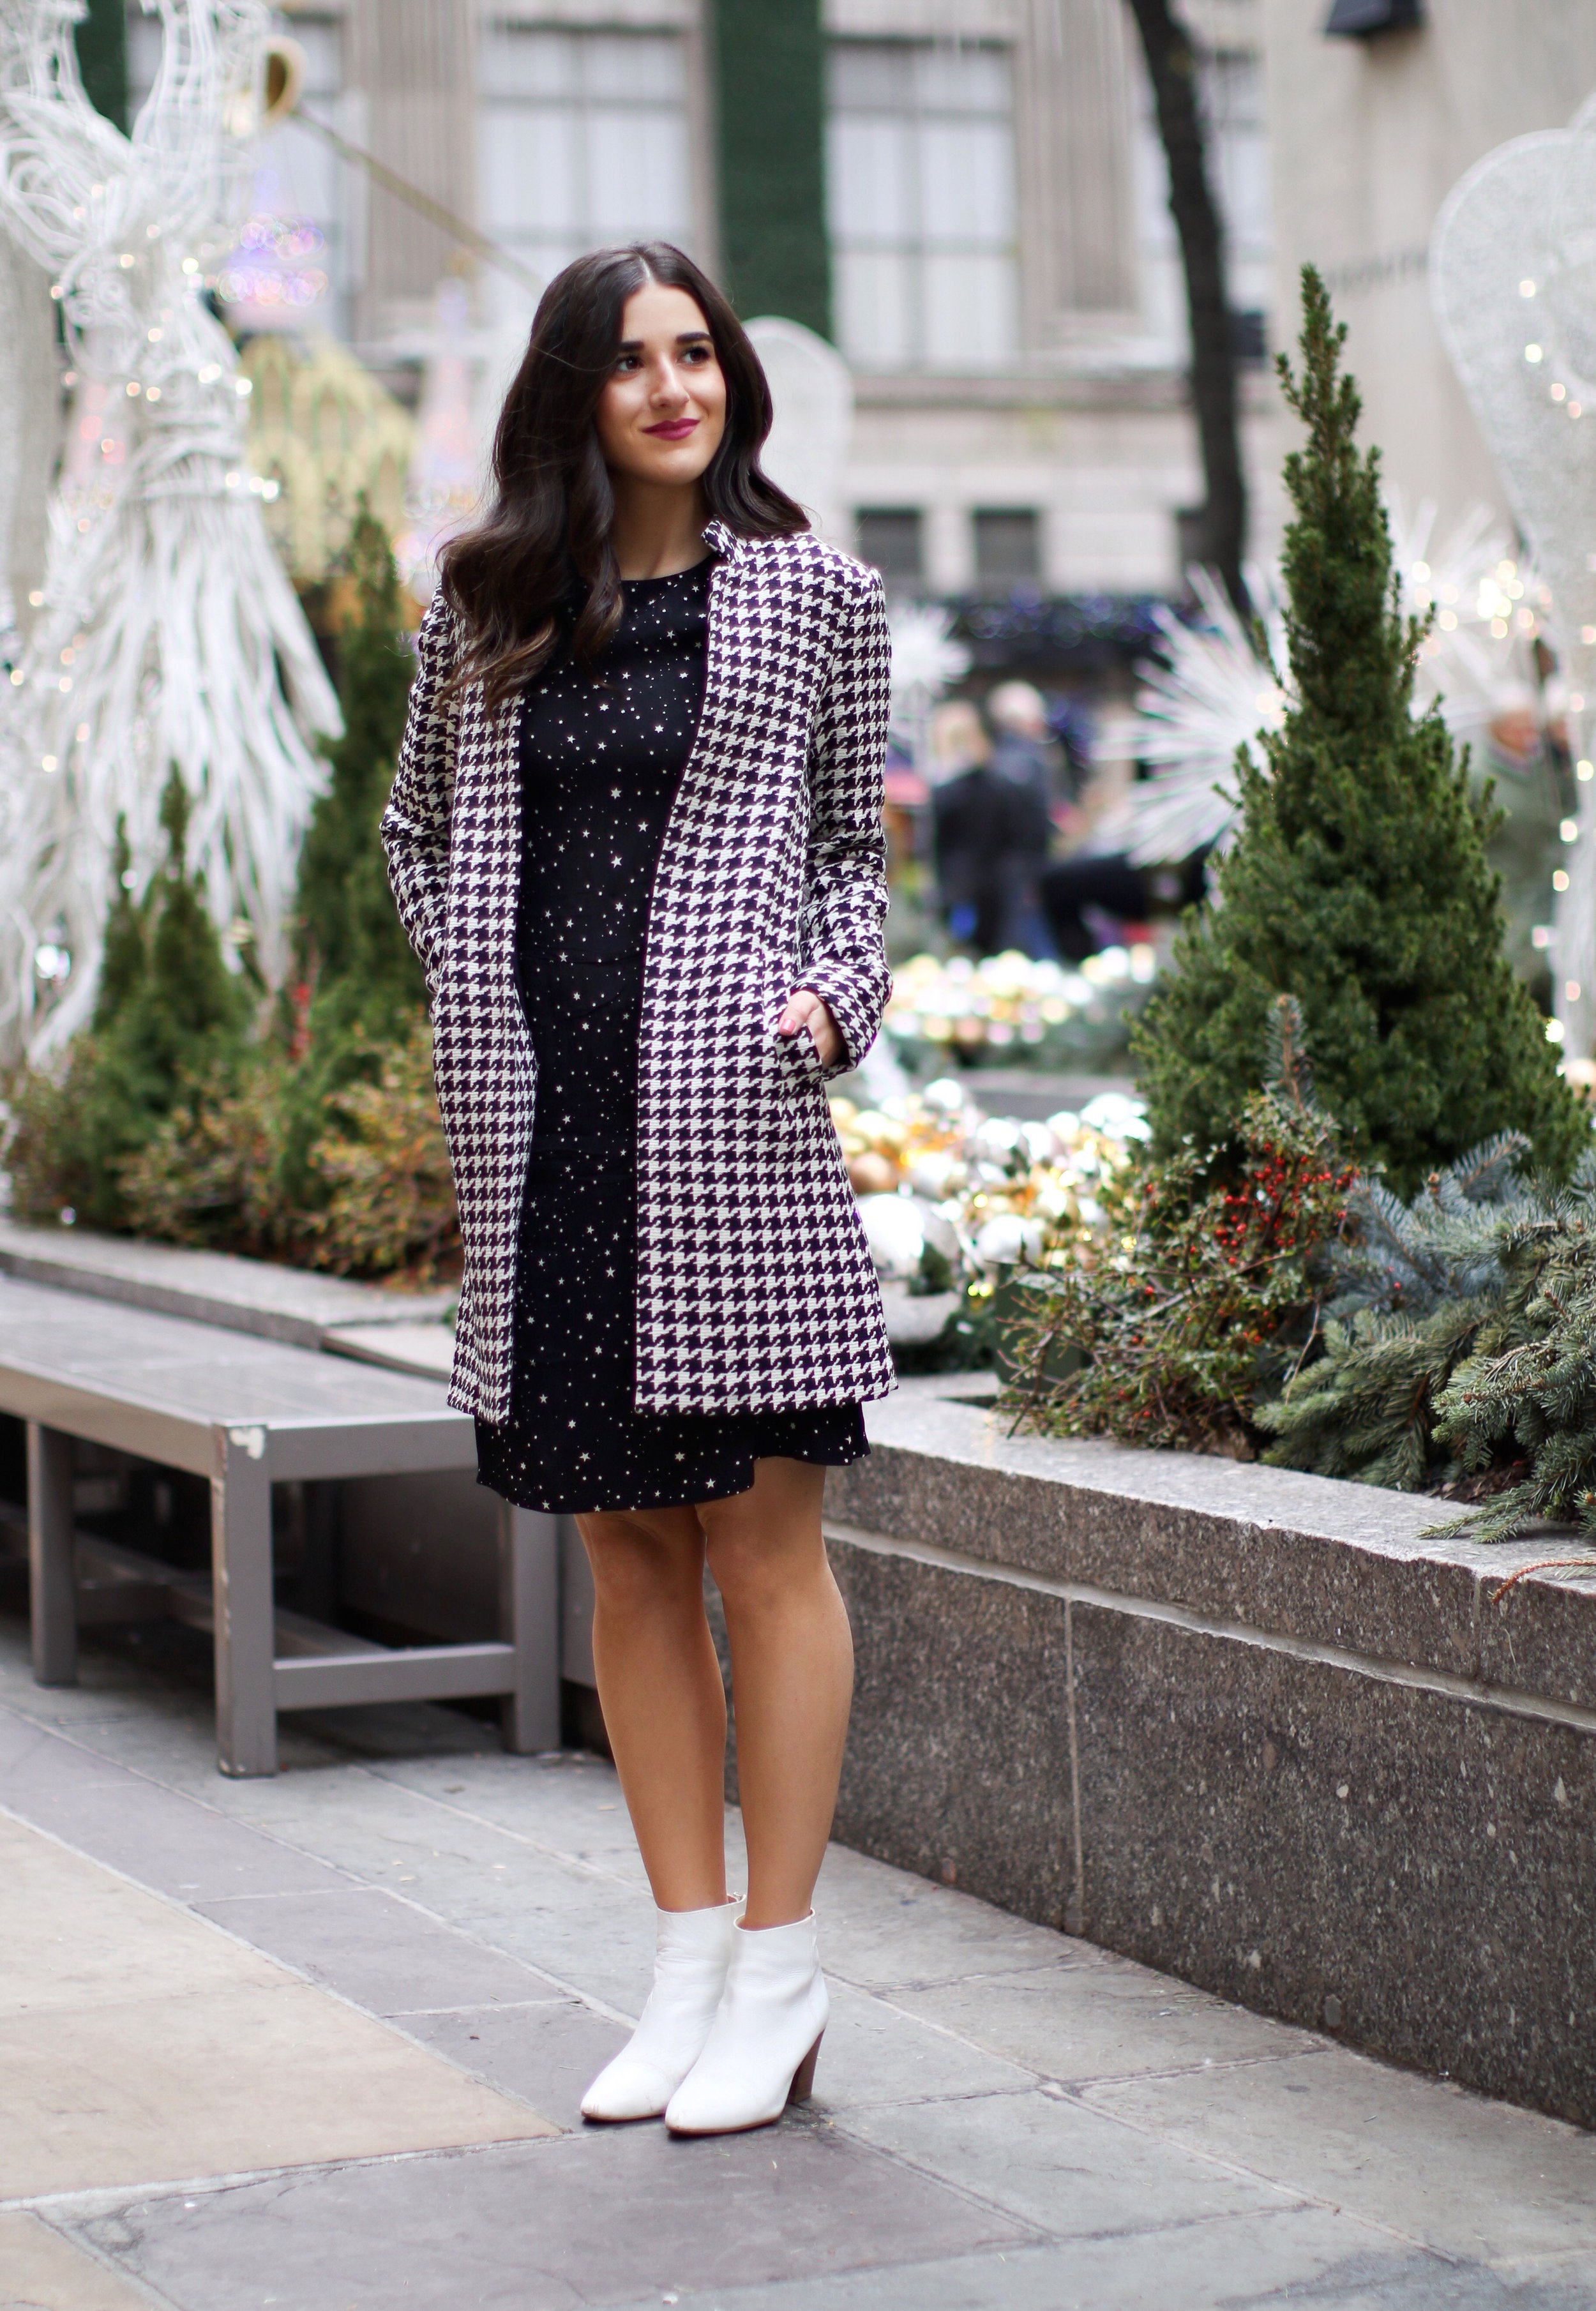 Houndstooth Coat White Booties The Pros And Cons Of Freelancing Esther Santer Fashion Blog NYC Street Style Blogger Outfit OOTD Trendy Holiday Season New York City Photoshoot Pretty Hair Black Star Dress Cute Shoes Shop H&M Zara Girl Winter Women Wear.jpg